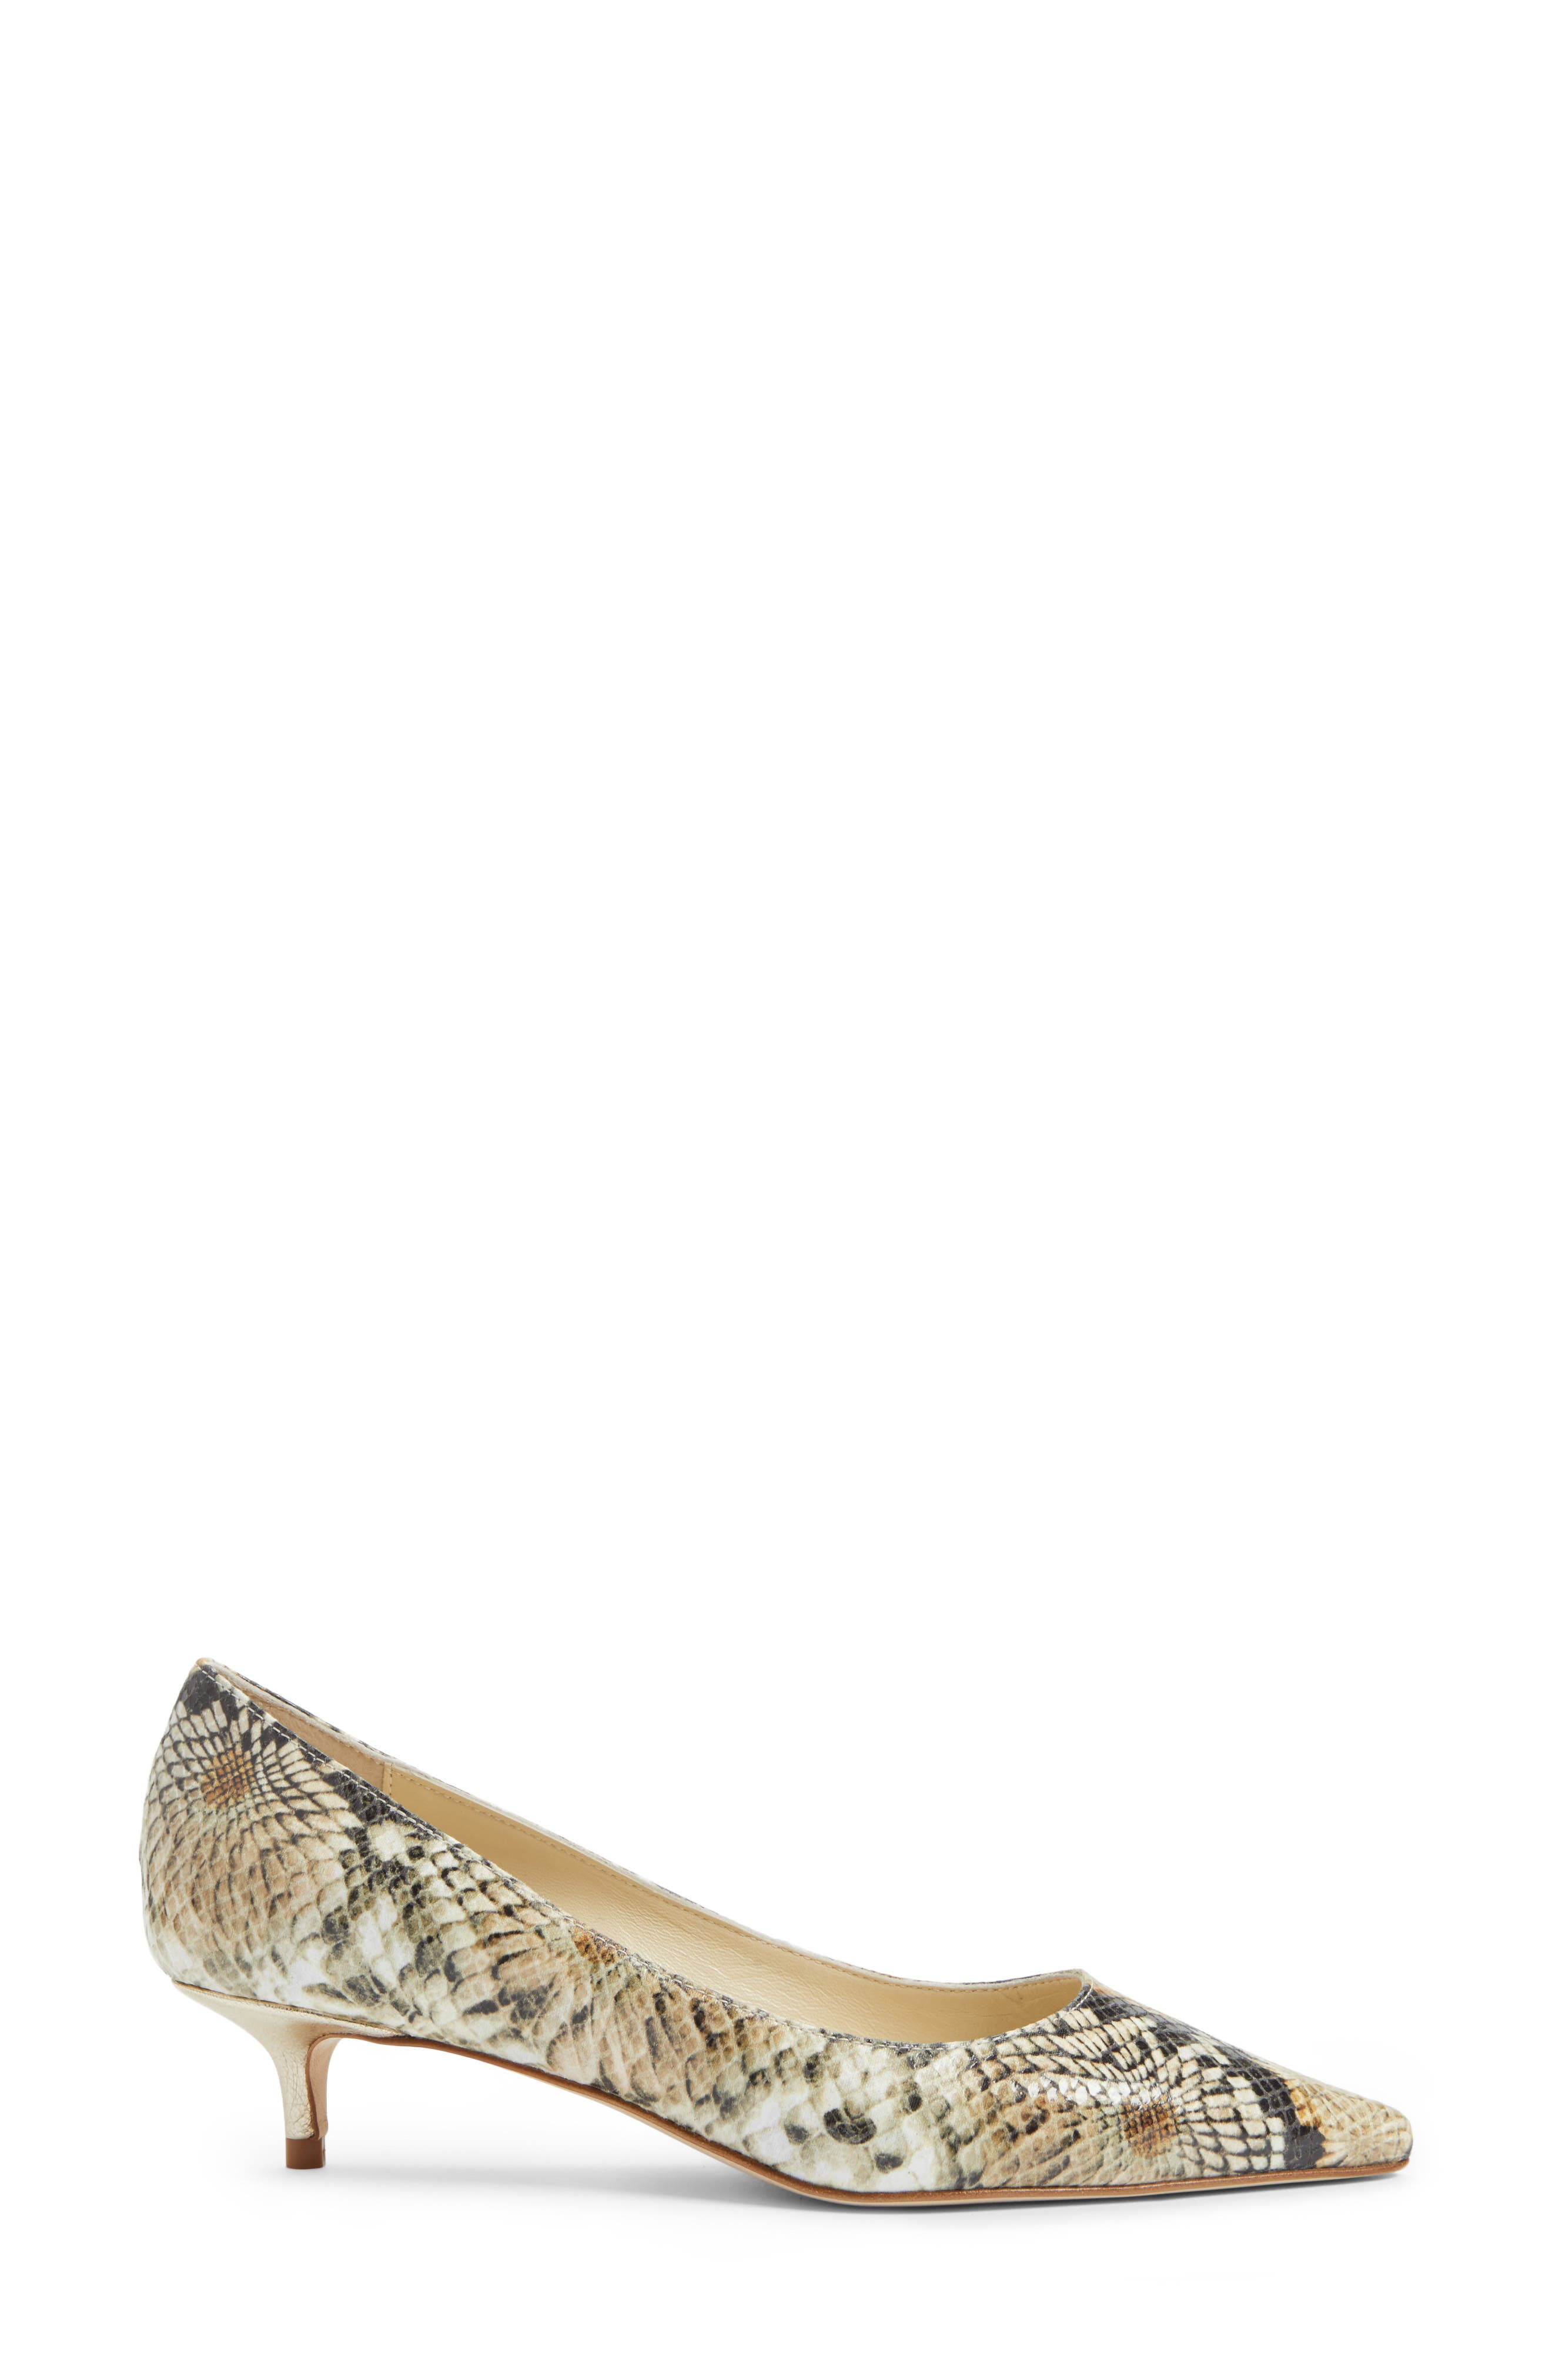 Butter Born Pointy Toe Pump,                             Alternate thumbnail 18, color,